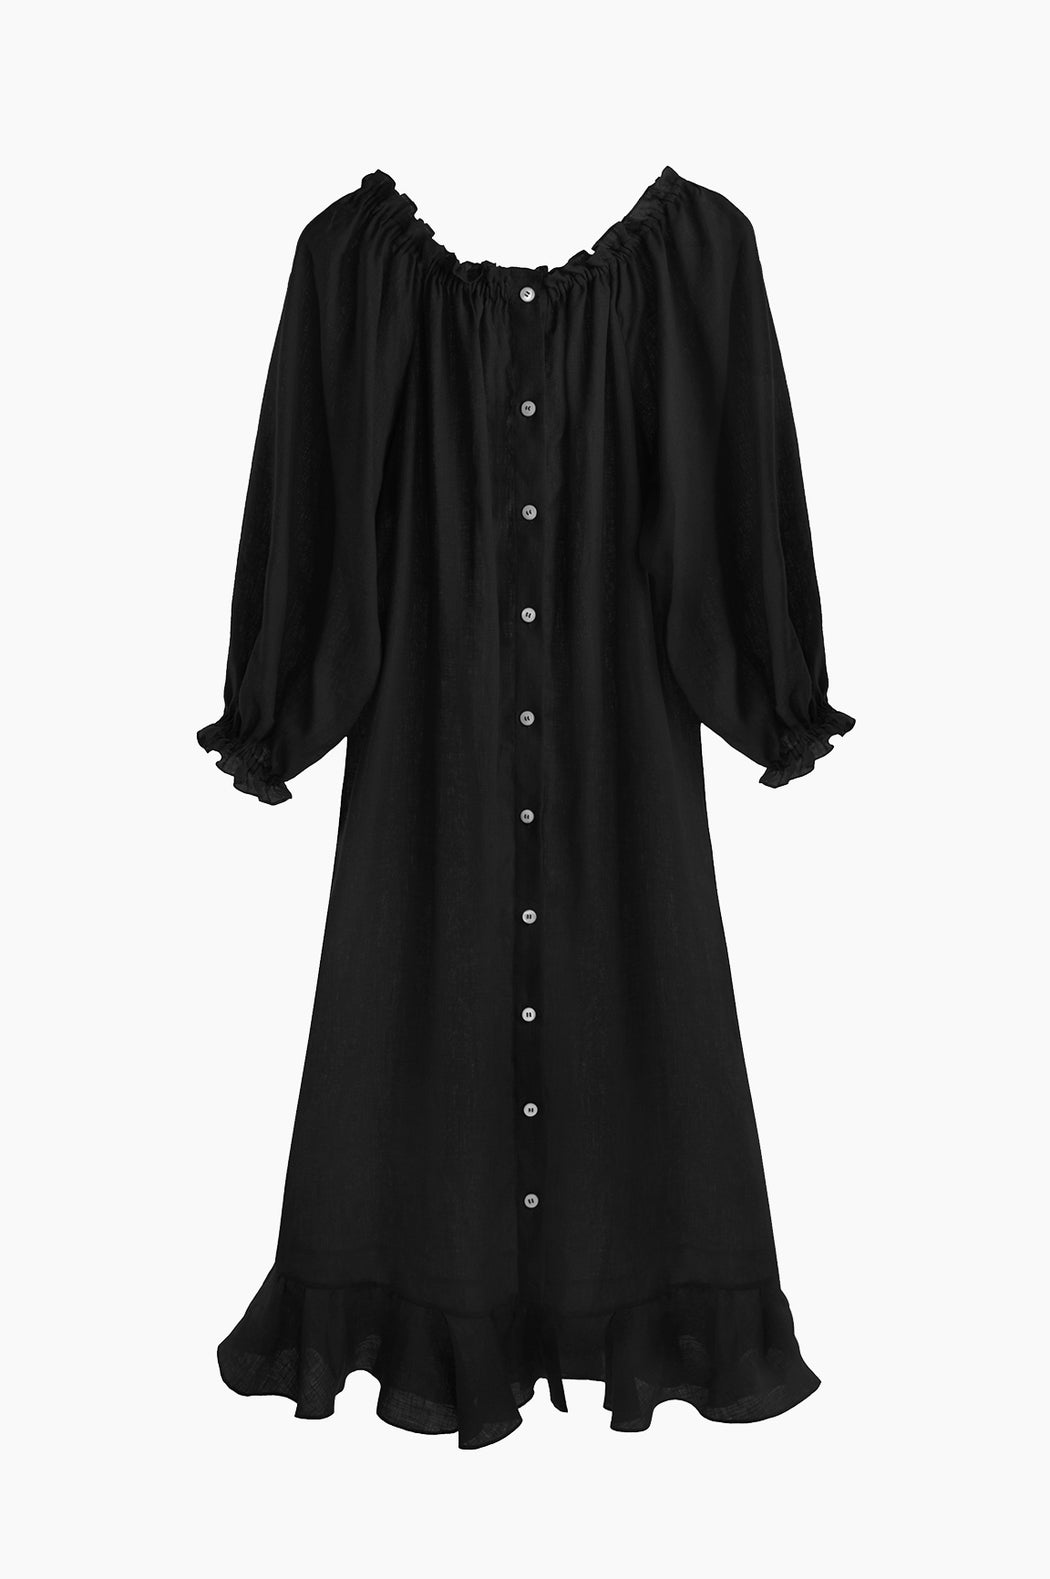 100% linen black off-the-shoulder dress.